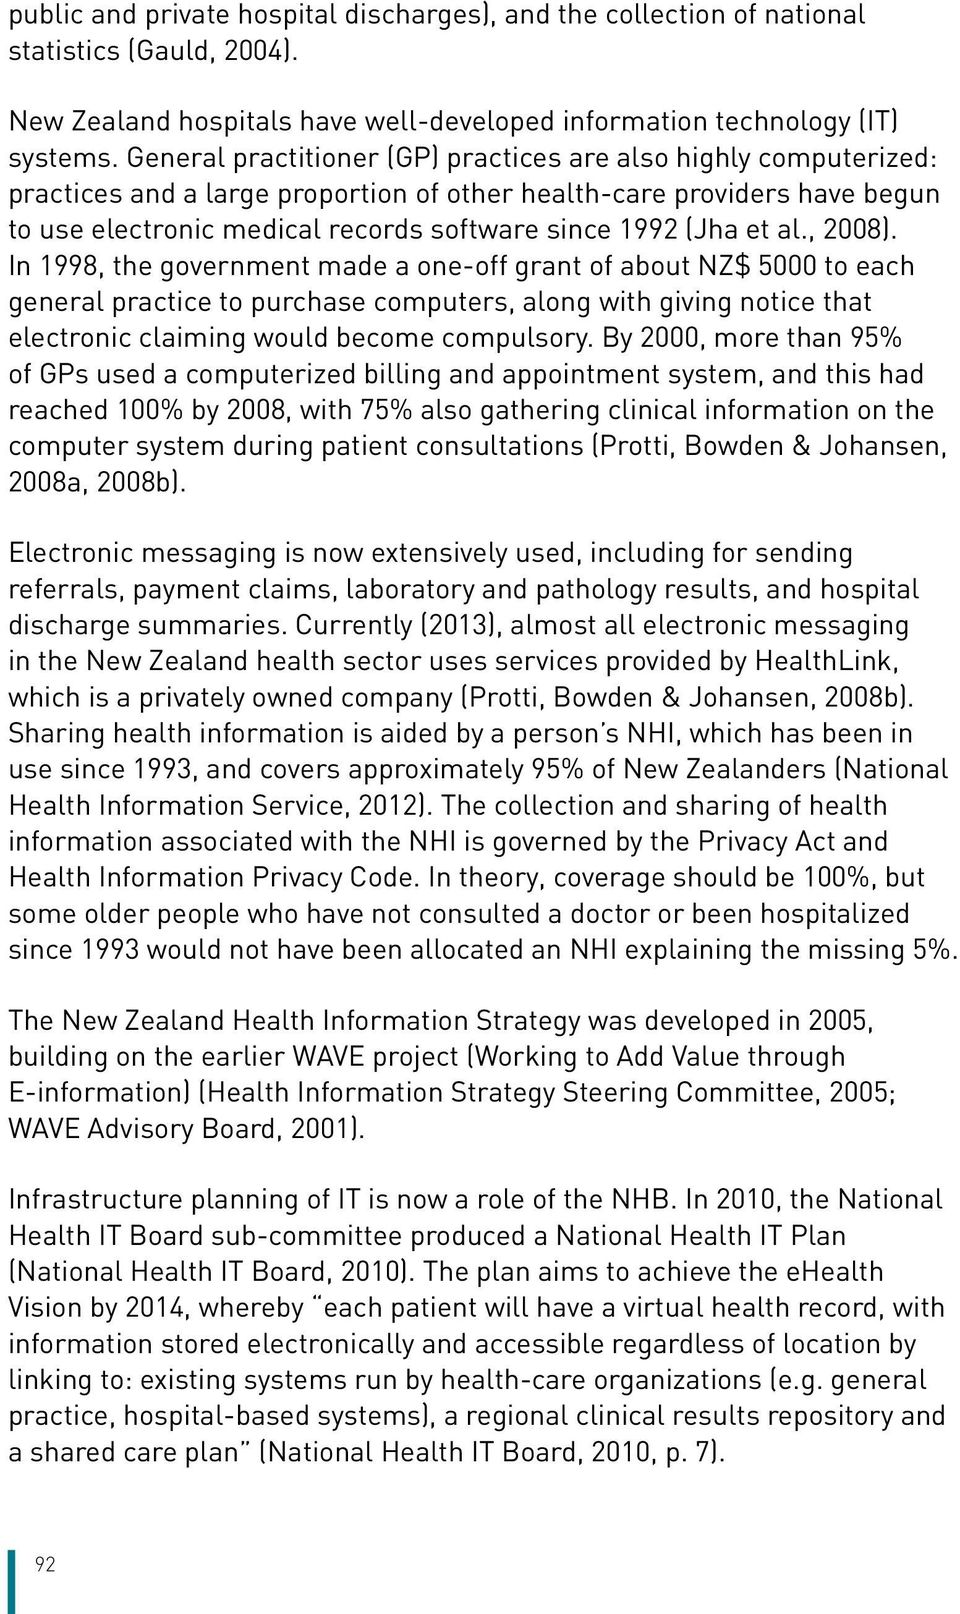 et al., 2008). In 1998, the government made a one-off grant of about NZ$ 5000 to each general practice to purchase computers, along with giving notice that electronic claiming would become compulsory.